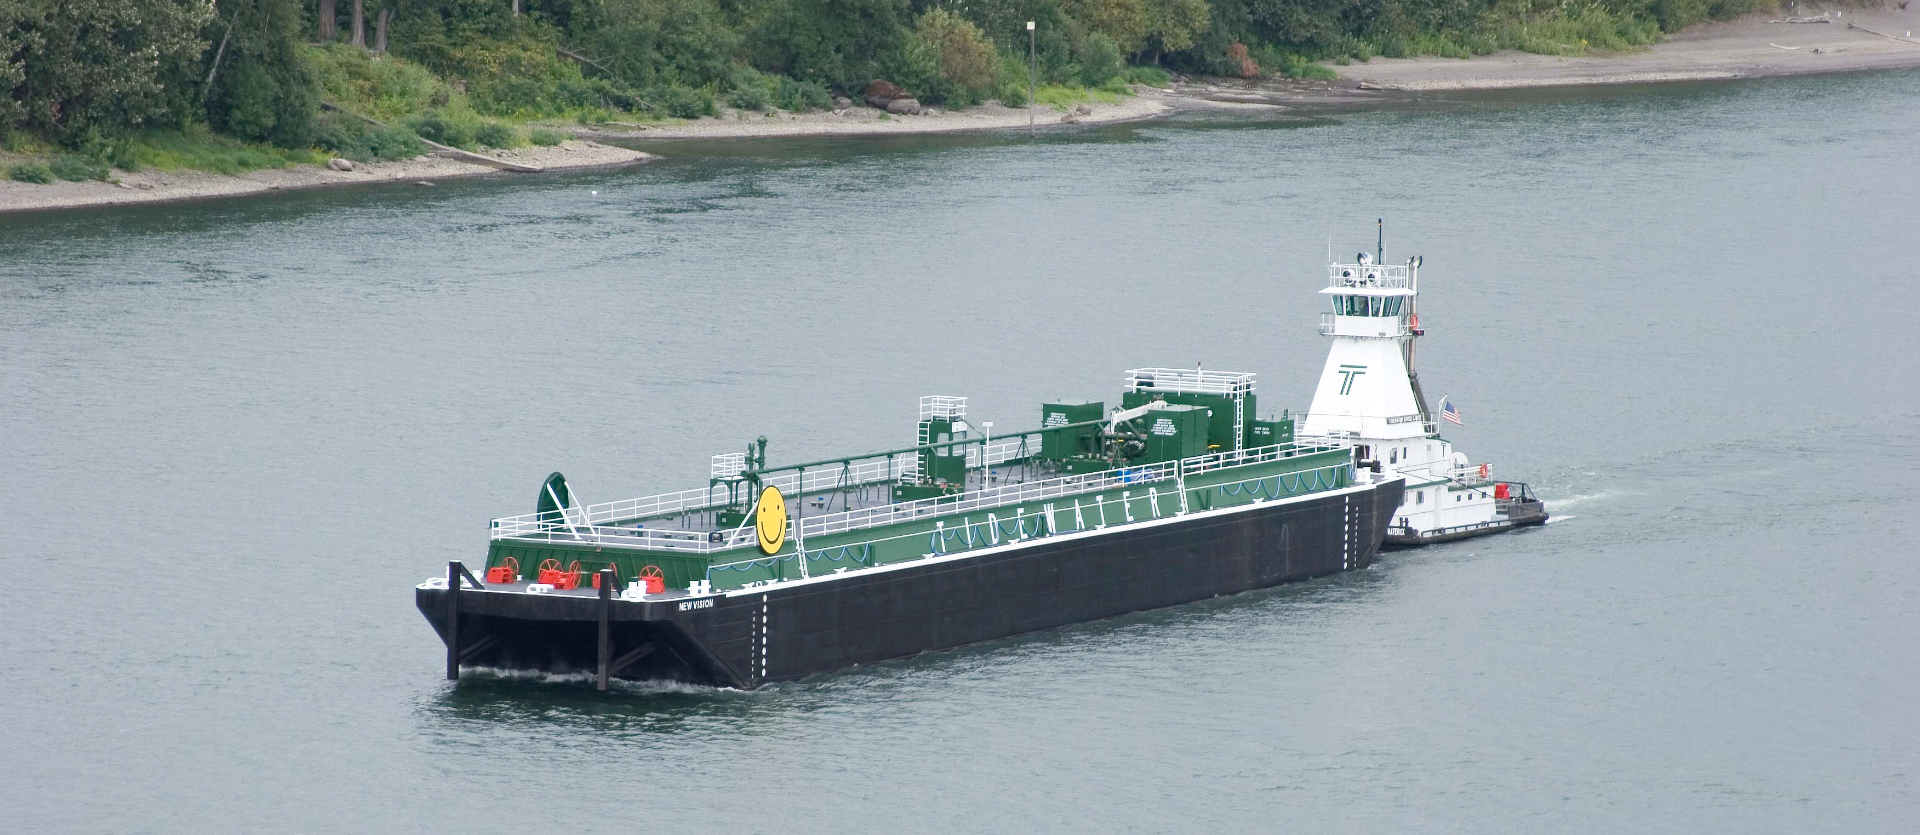 Tidewater's New Vision Barge